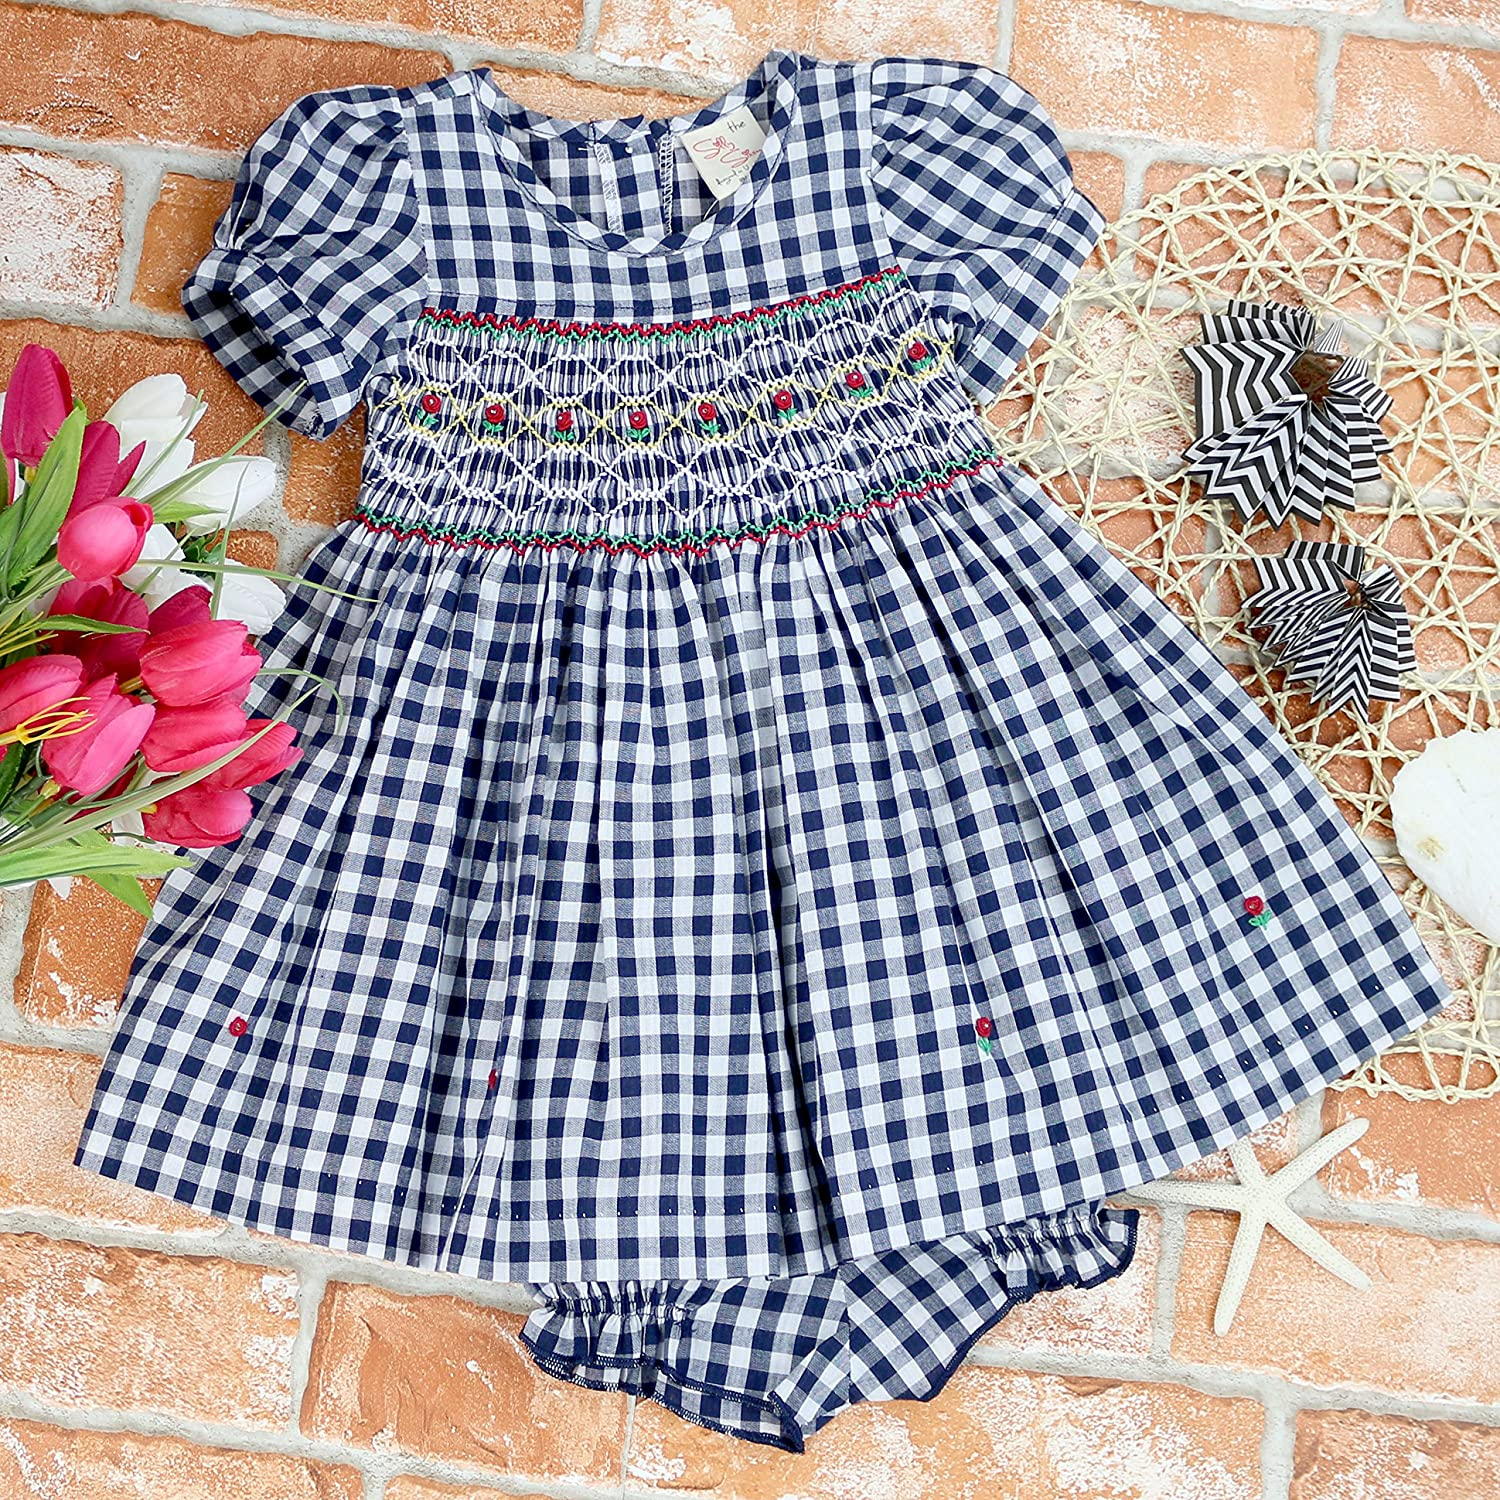 Infant and Toddlers Remy Redmonds Plaid 9-12M - 4T Hand Smocked Dress sissymini